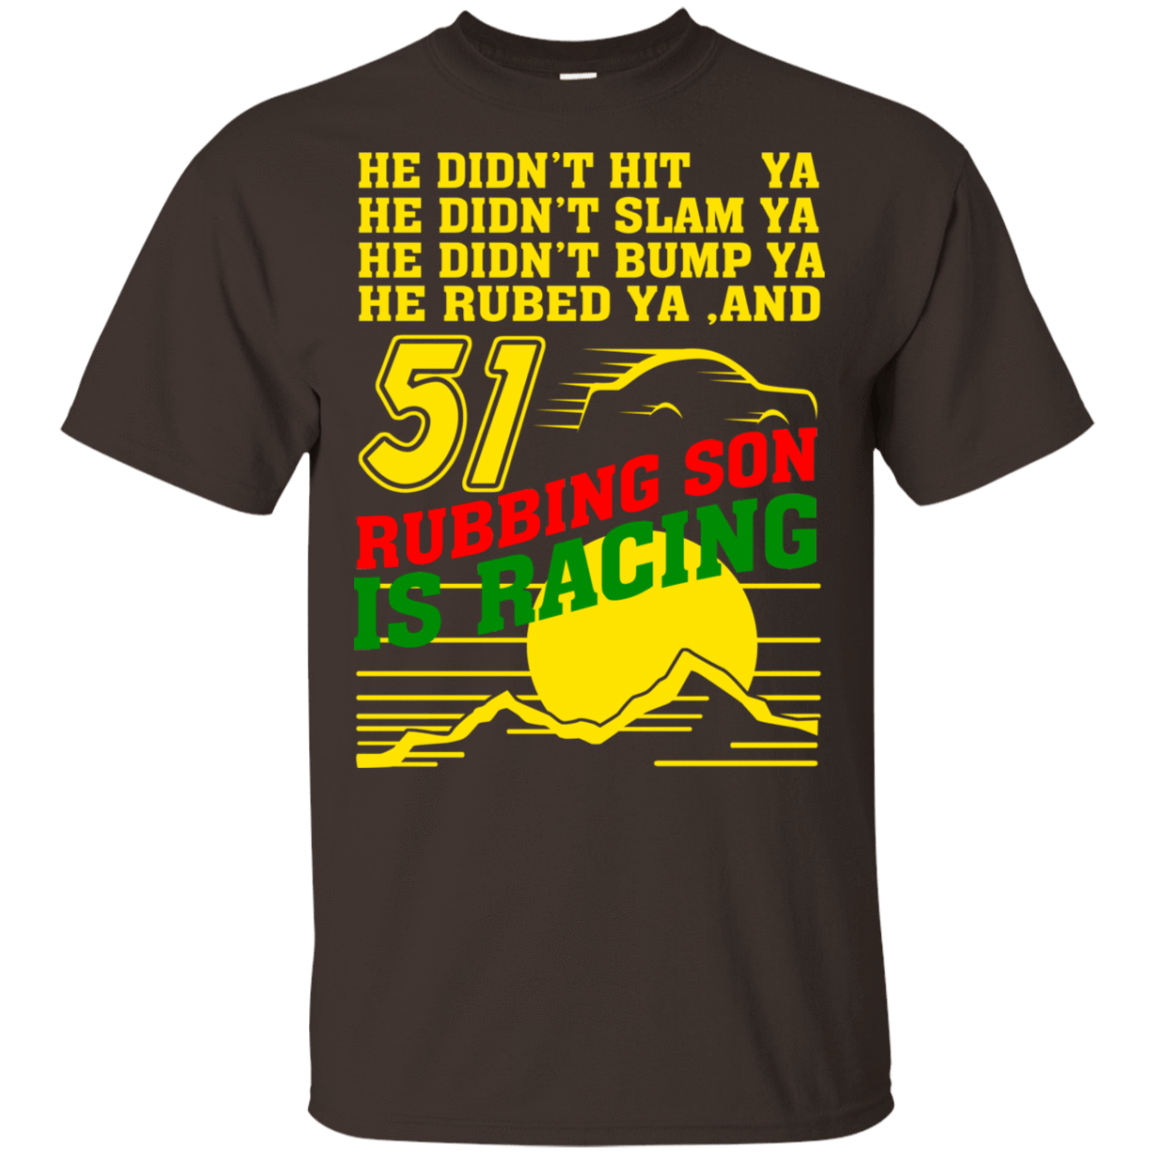 51 Rubbing Son Is Racing 22-2283-72932667-12087 - Tee Ript